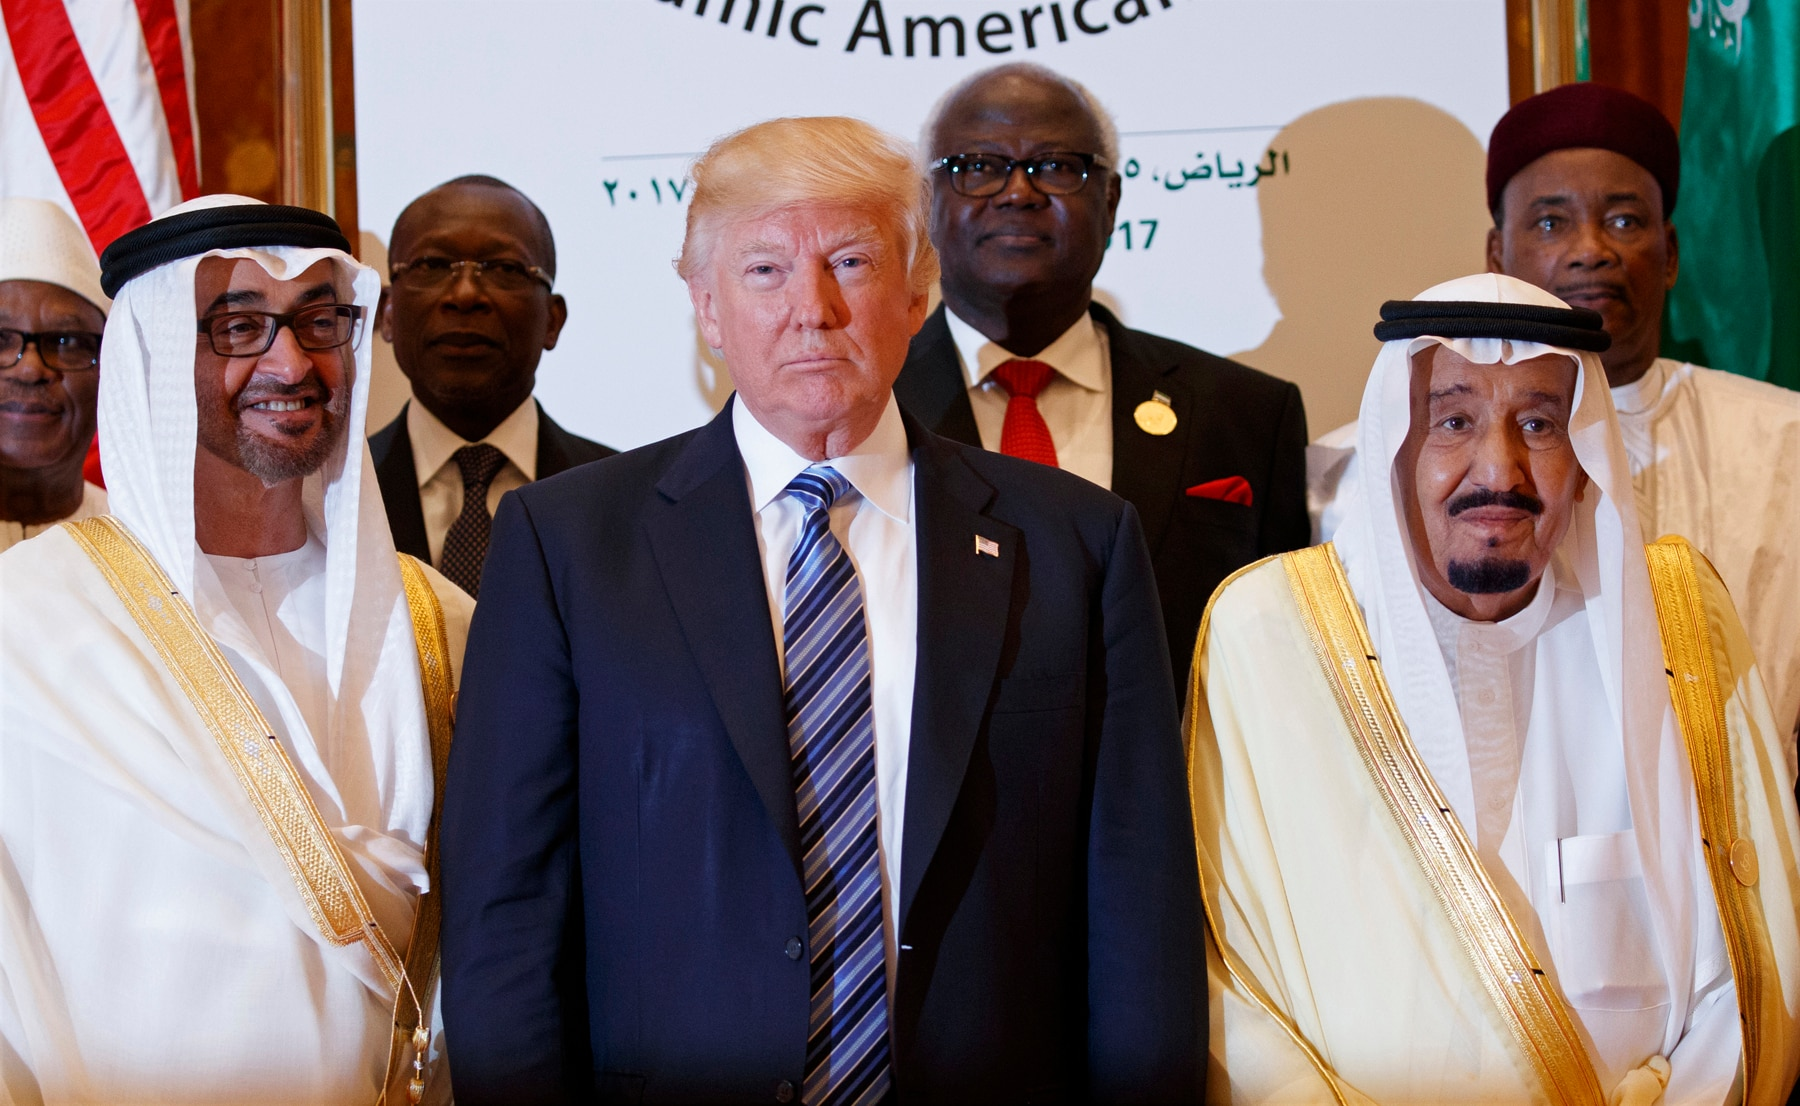 Trump's wife keeps her head bare during Saudi Arabia visit